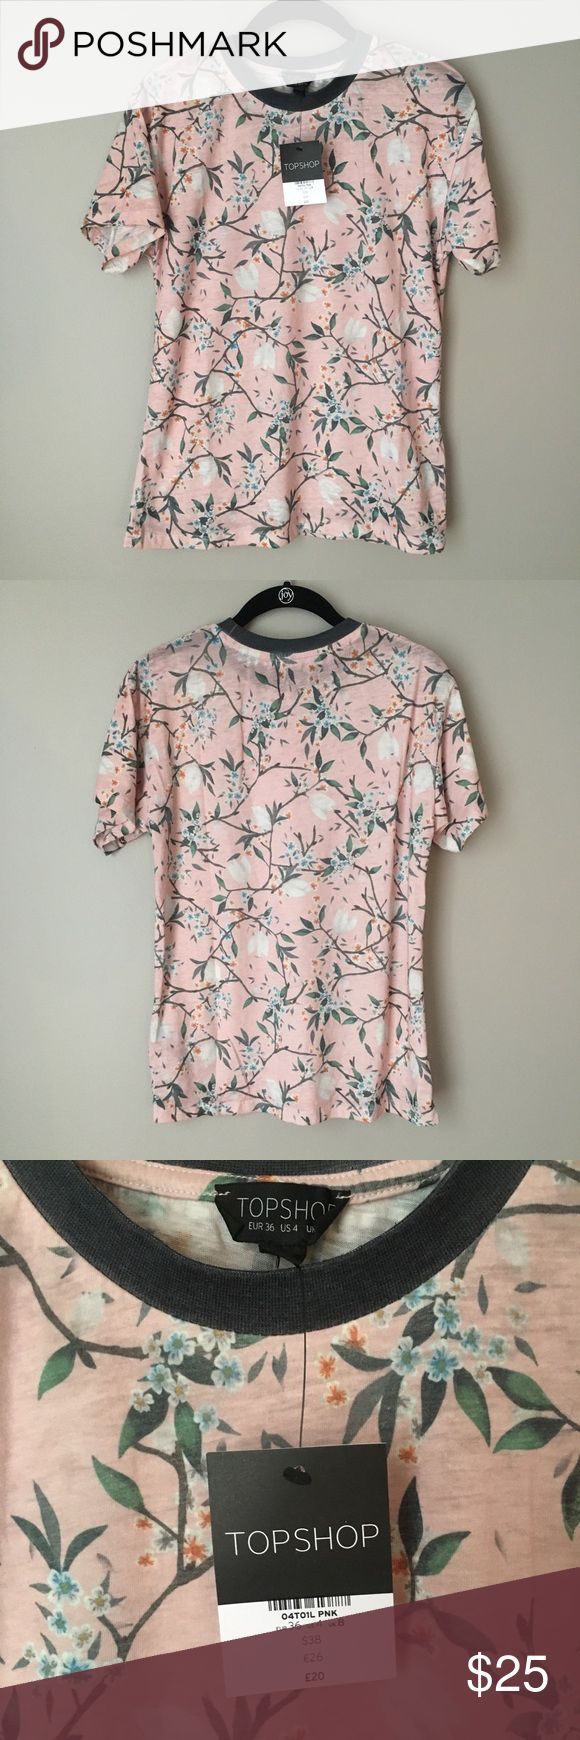 """NWT! Topshop """"Tokyo Blossom"""" Pink Floral Tee SPRING IS IN THE AIR! Ok, maybe that's just wishful thinking, but it'll be here before you know it! Get ready for the season in this pretty pink floral """"Tokyo Blossom"""" tee by topshop. Brand new with tags, retails for $38!  Make an offer! Topshop Tops Tees - Short Sleeve"""